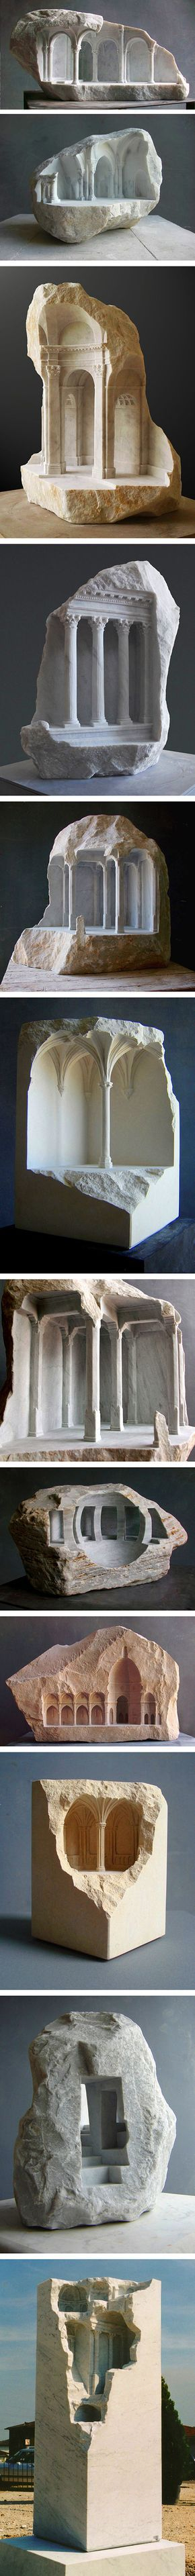 best interesting images on pinterest cool things contemporary